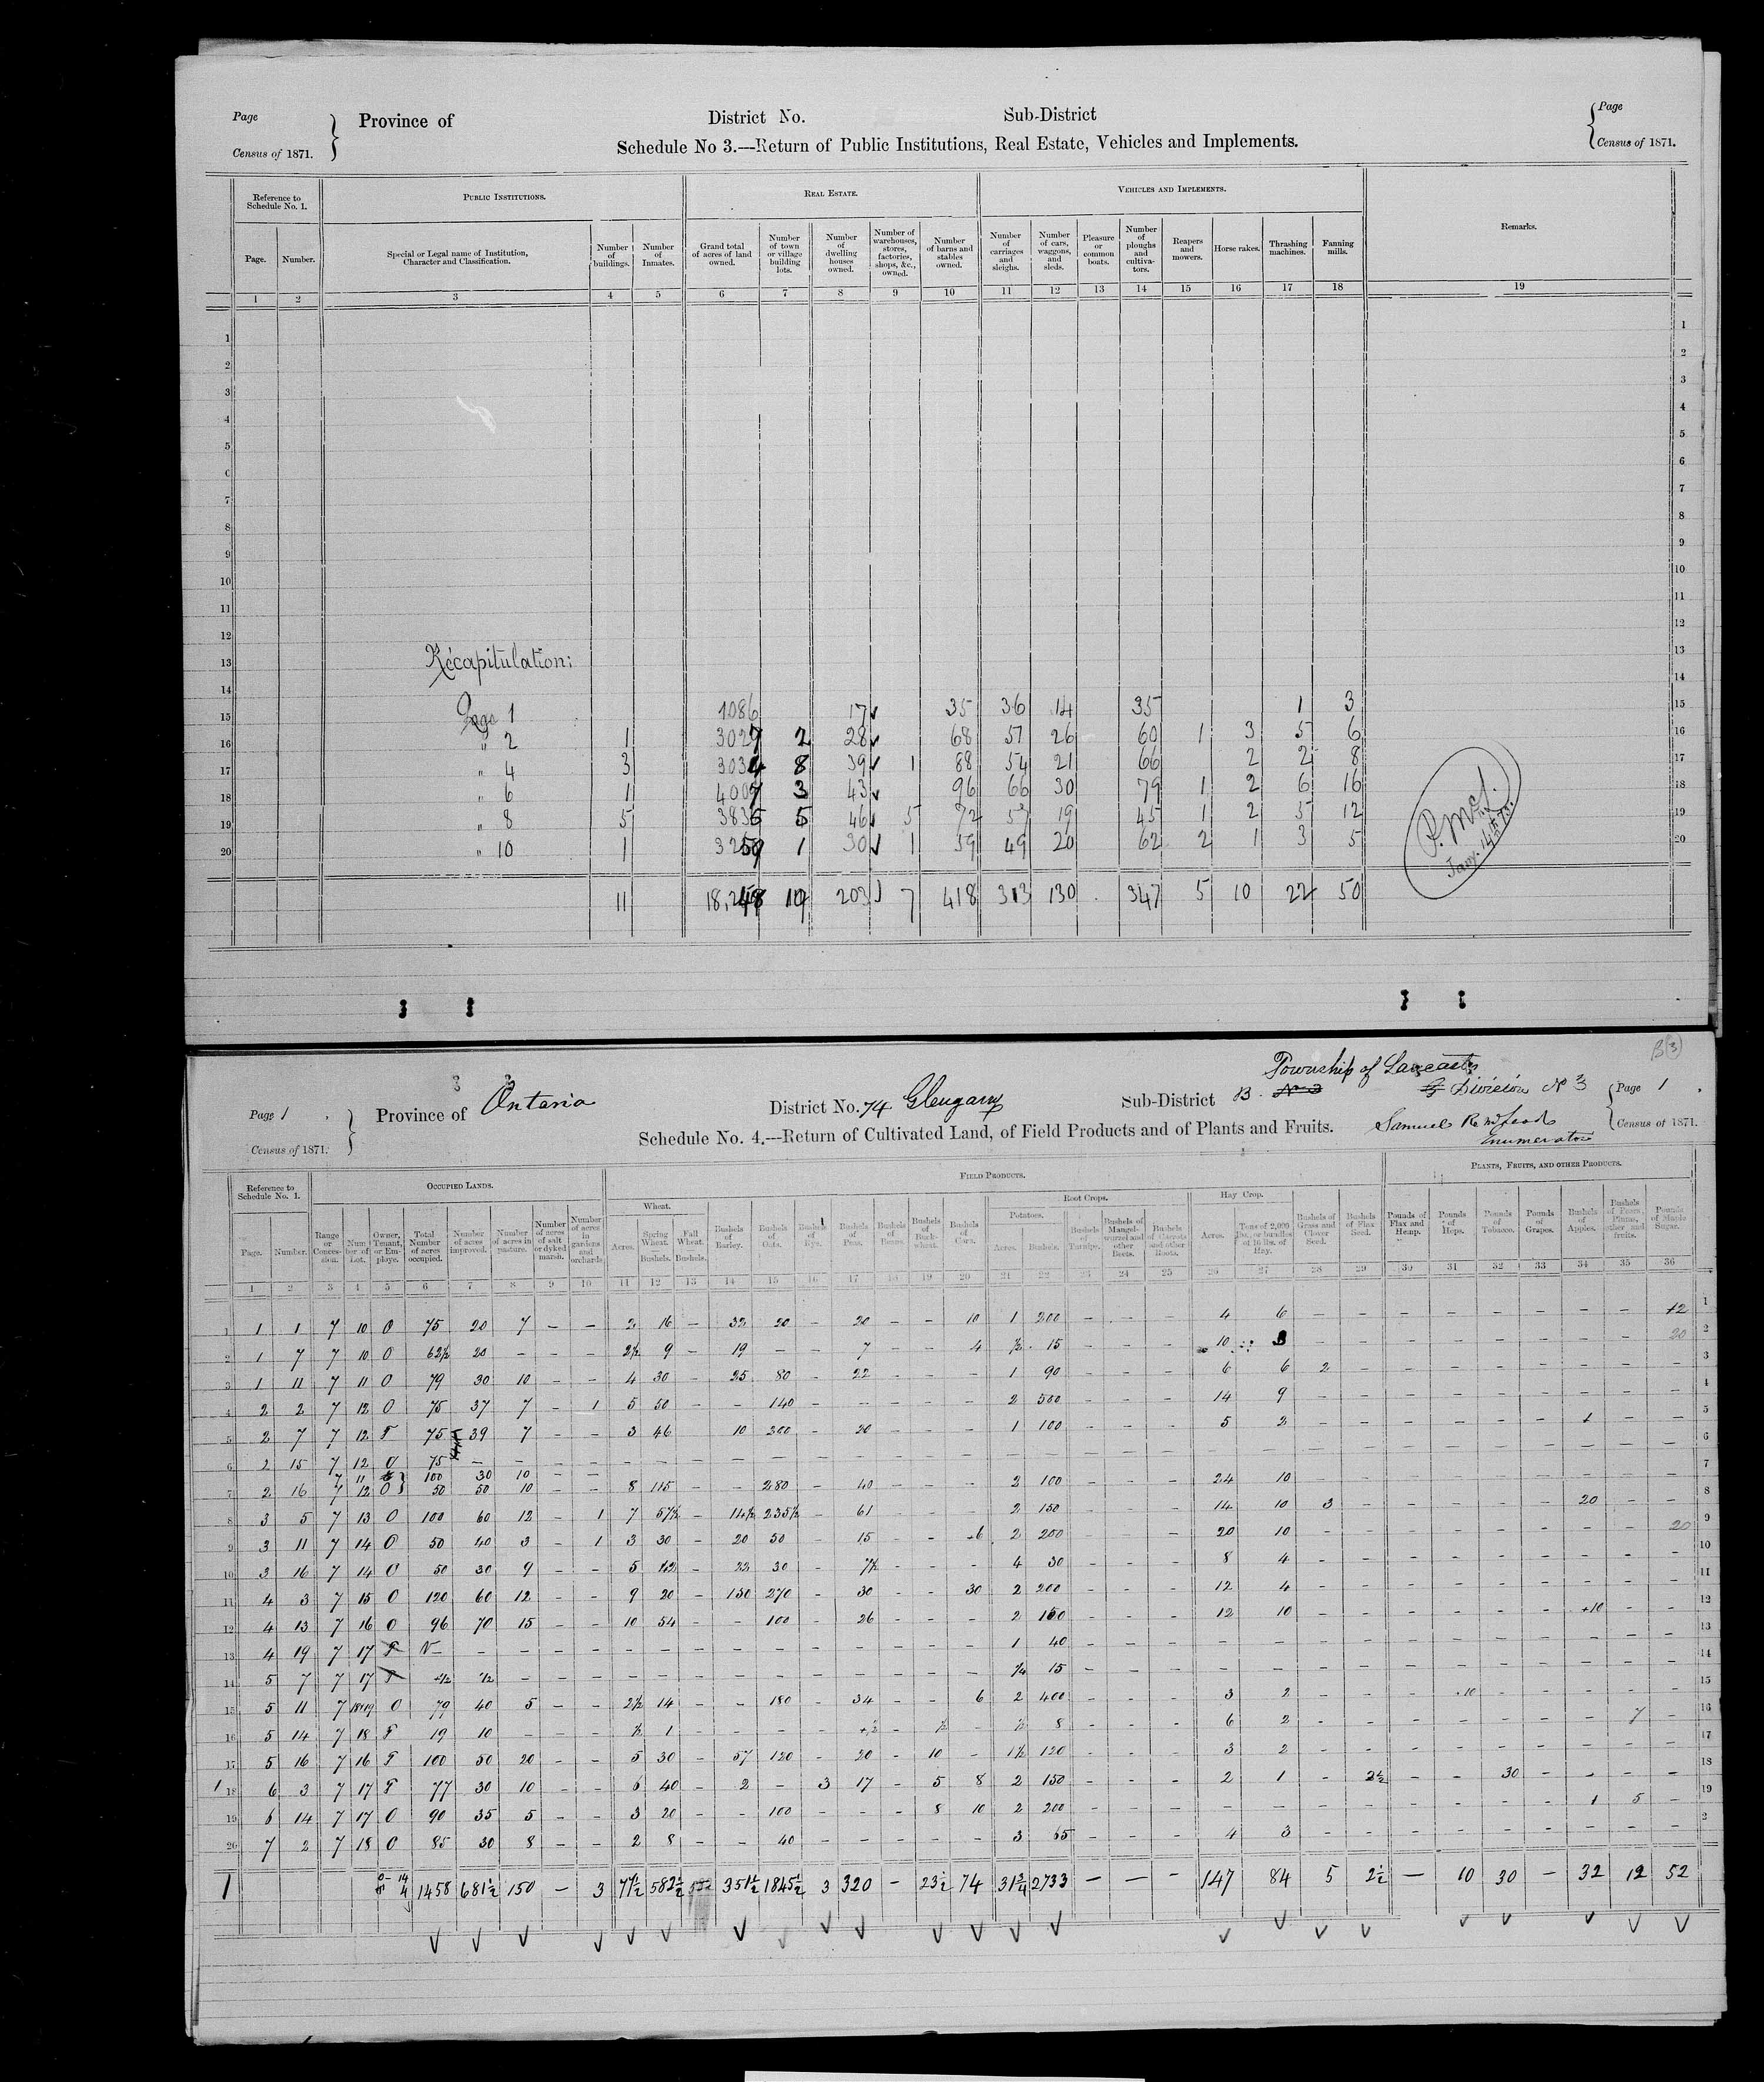 Title: Census of Canada, 1871 - Mikan Number: 142105 - Microform: c-10009